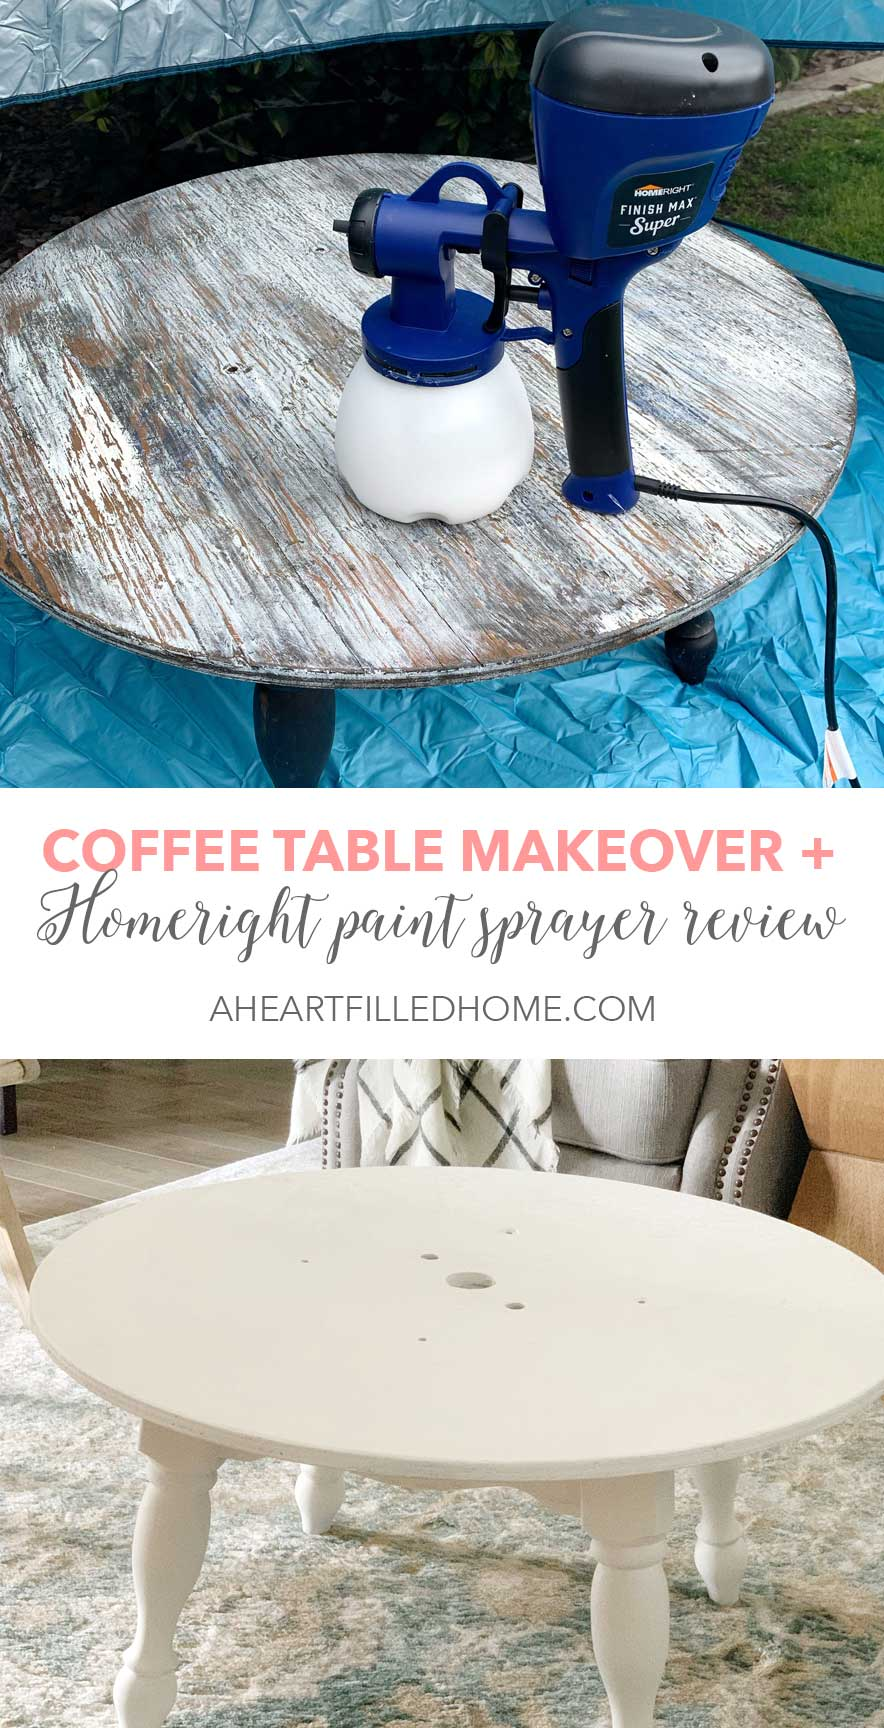 Coffee Table Makeover Homeright Paint Sprayer Review A